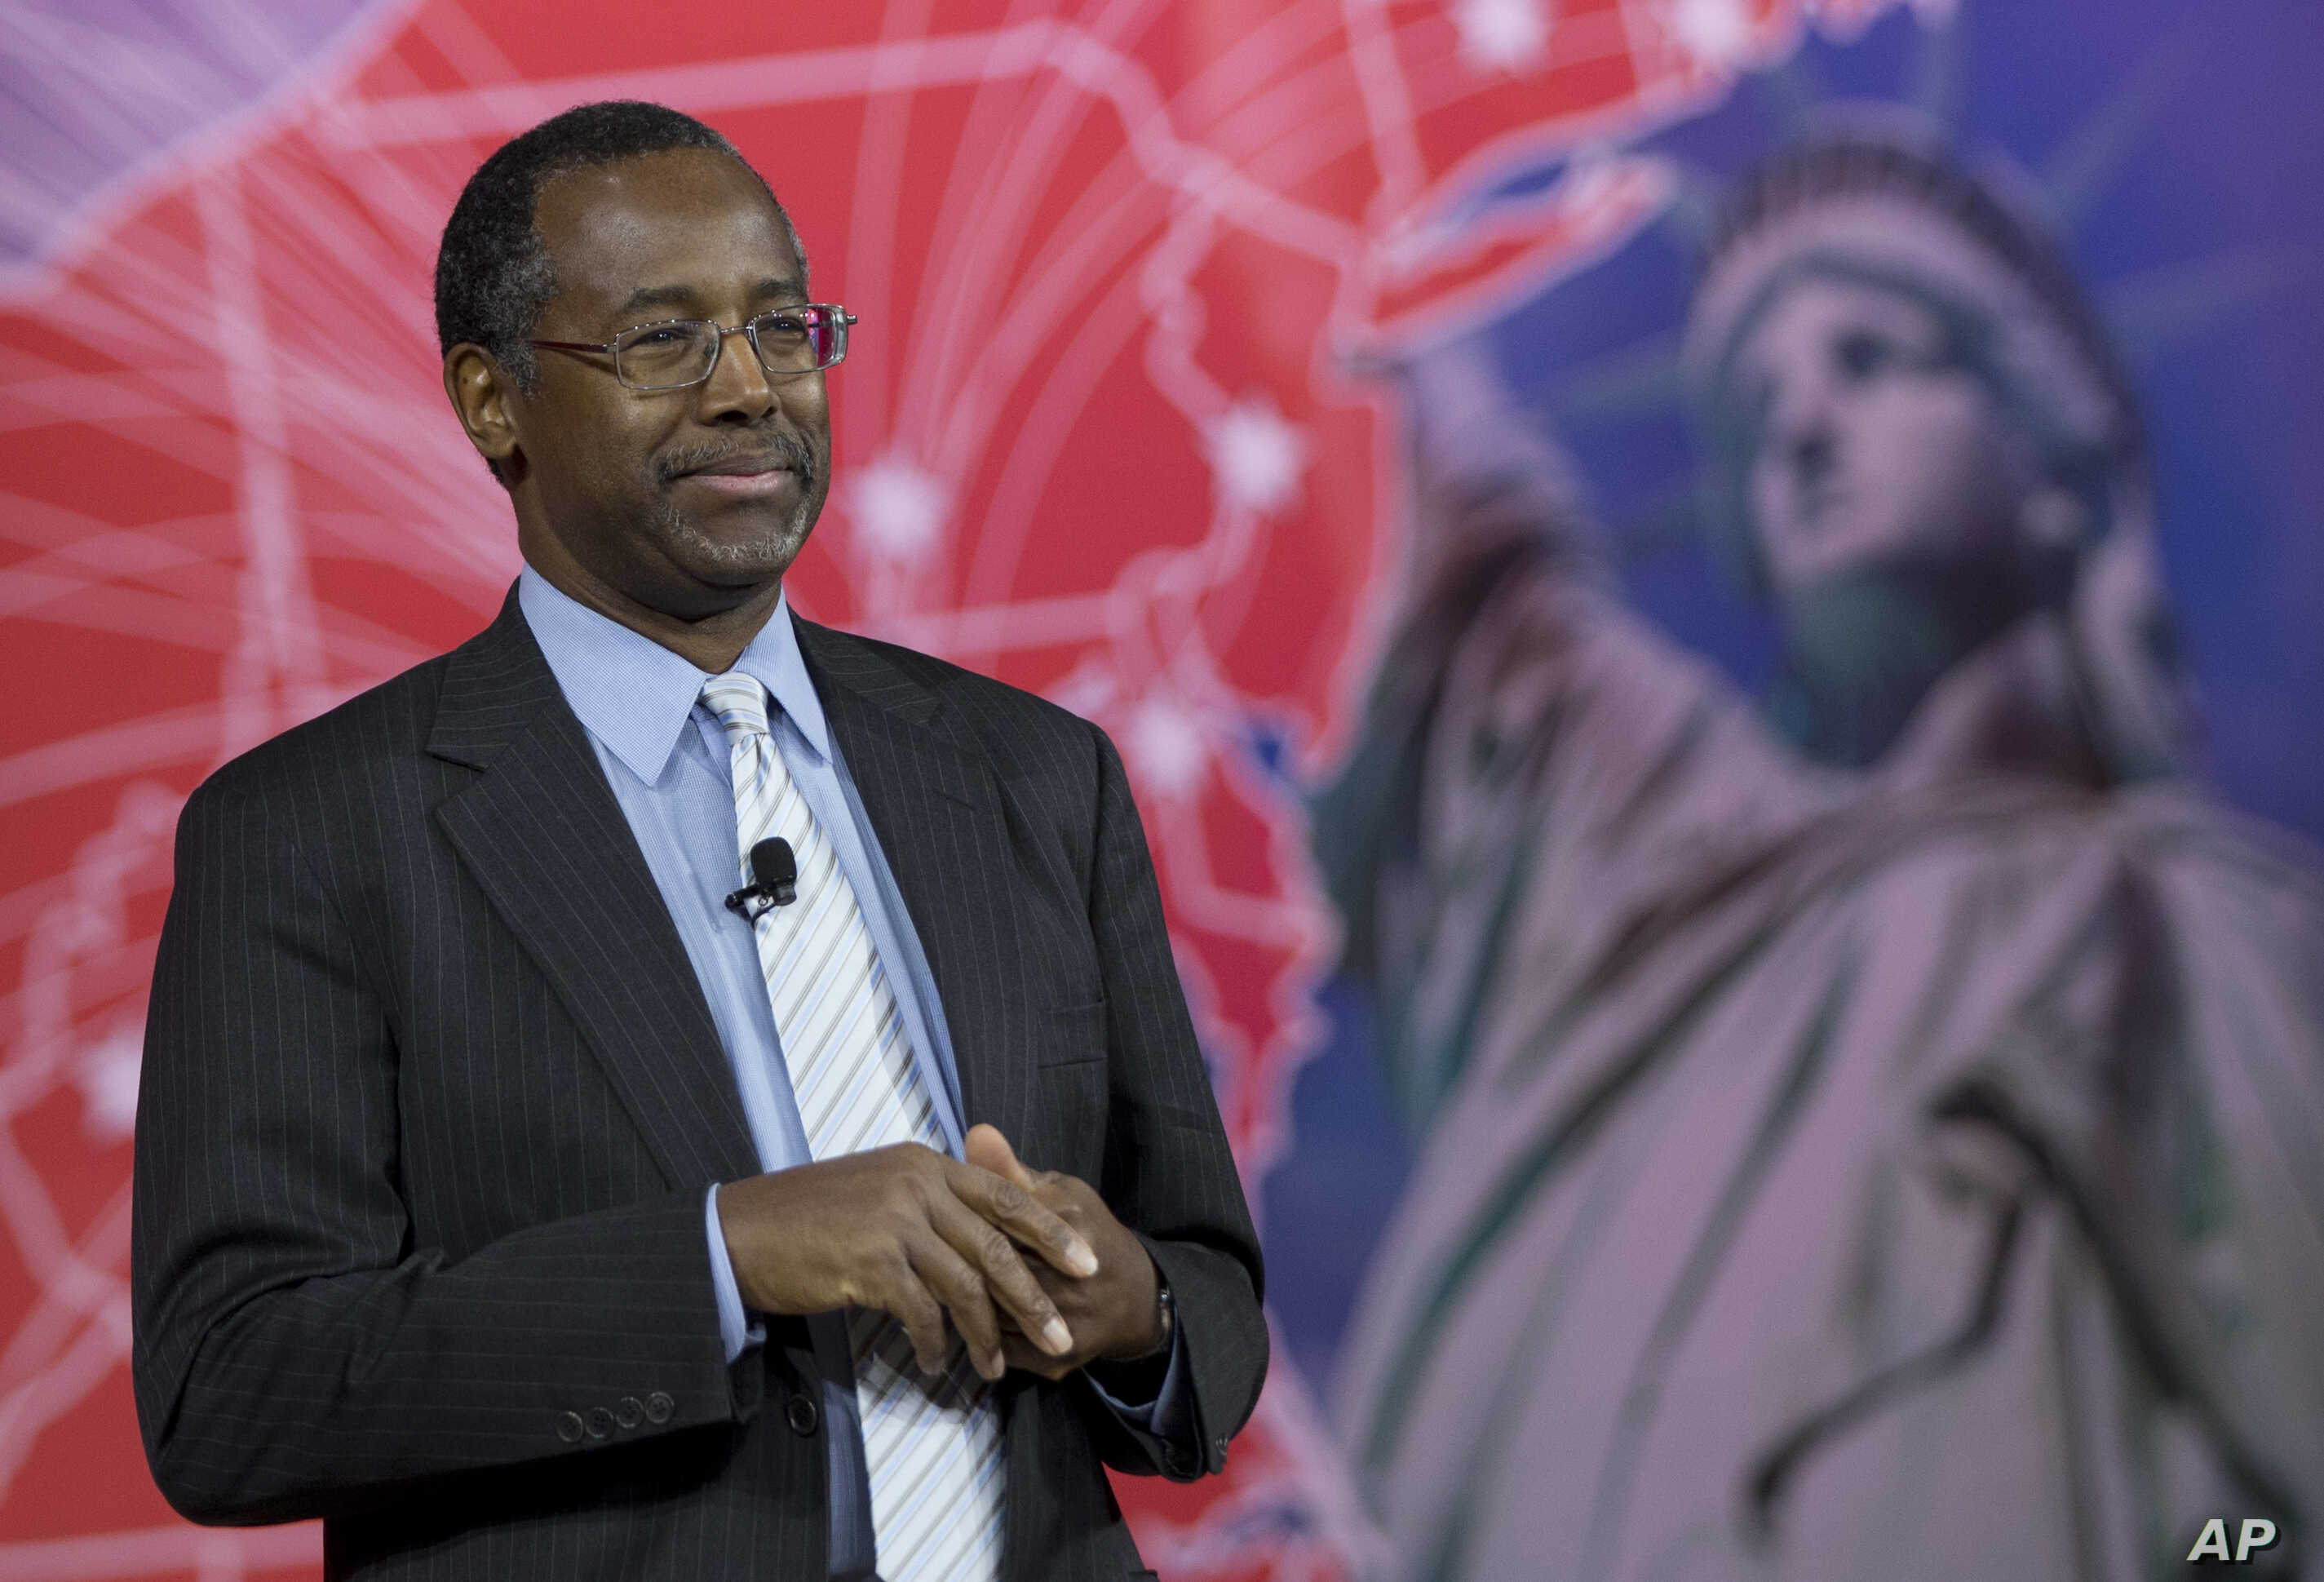 VOA Q&A: Ben Carson Discusses Race Relations in Baltimore